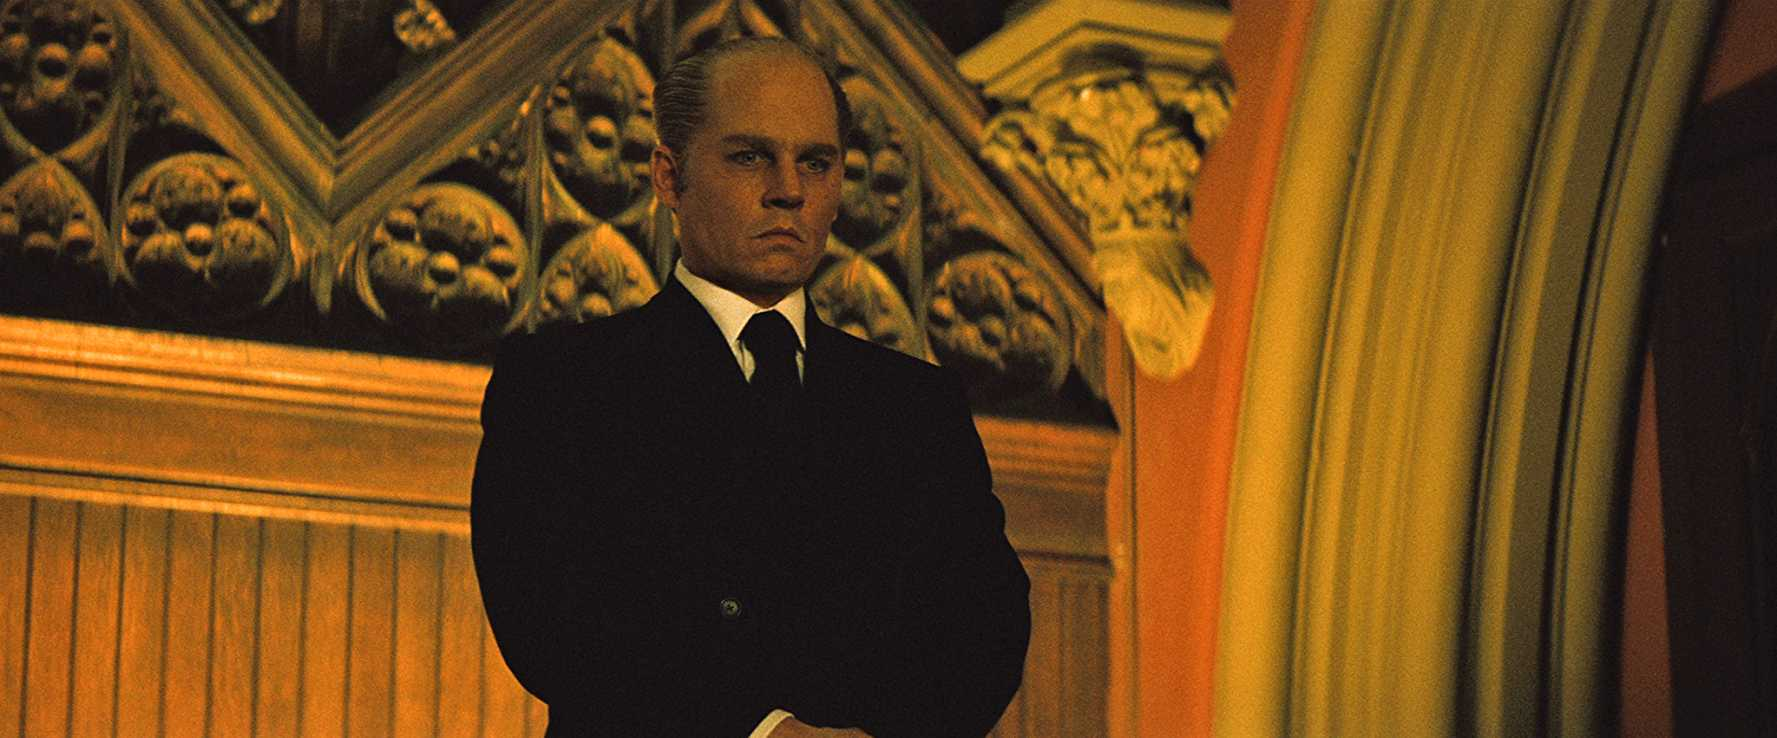 Johnny Depp as Whitey Bulger in 2015's Black Mass (Source: Black Mass/IMDb)